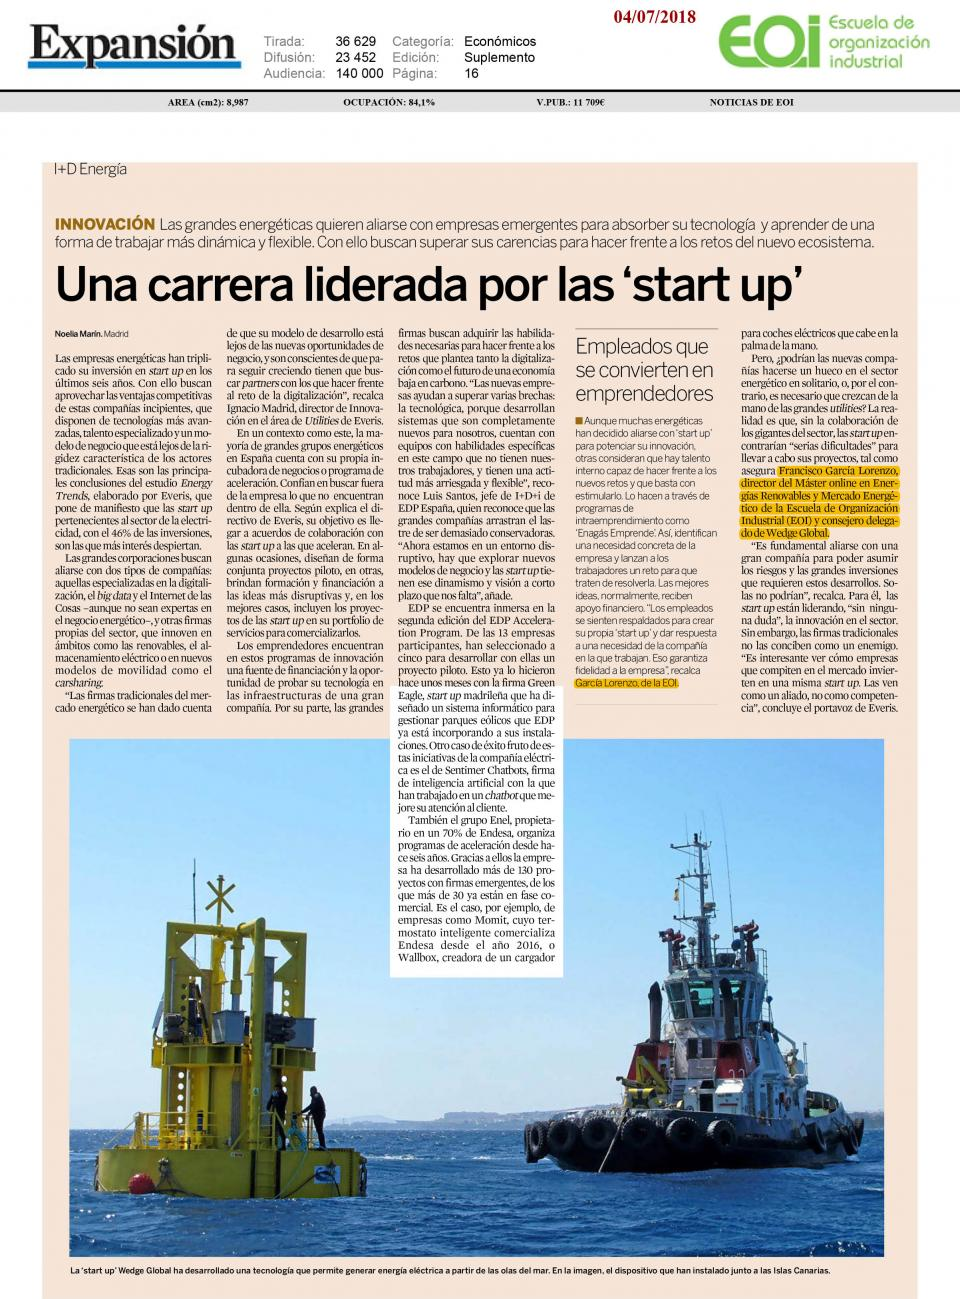 carrera-liderada-startups_expansion